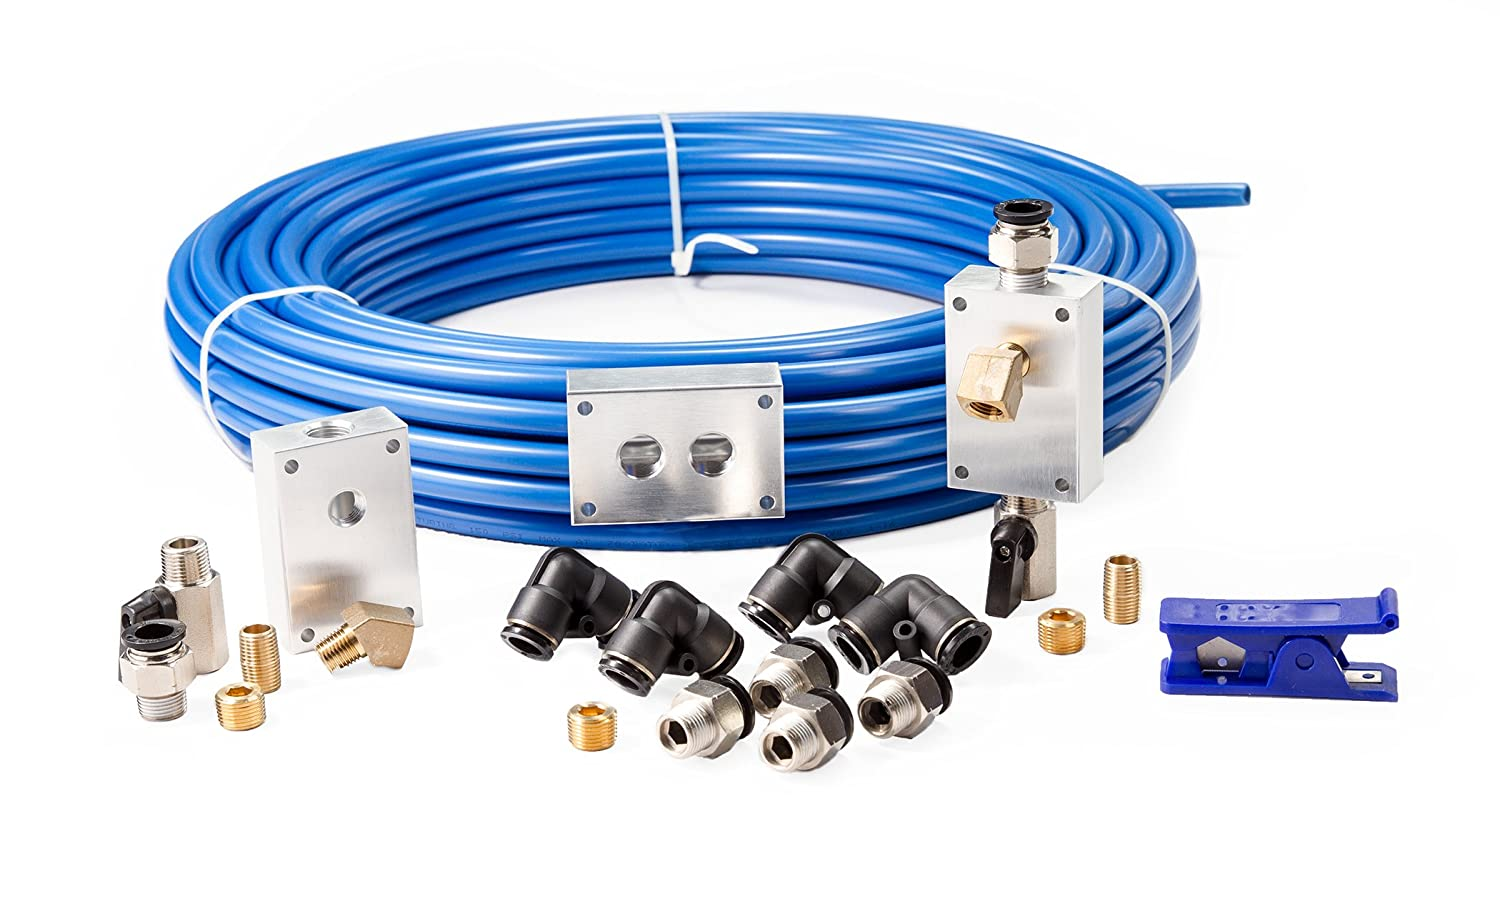 RapidAir Master Kit Includes 100ft of Tubing 90500